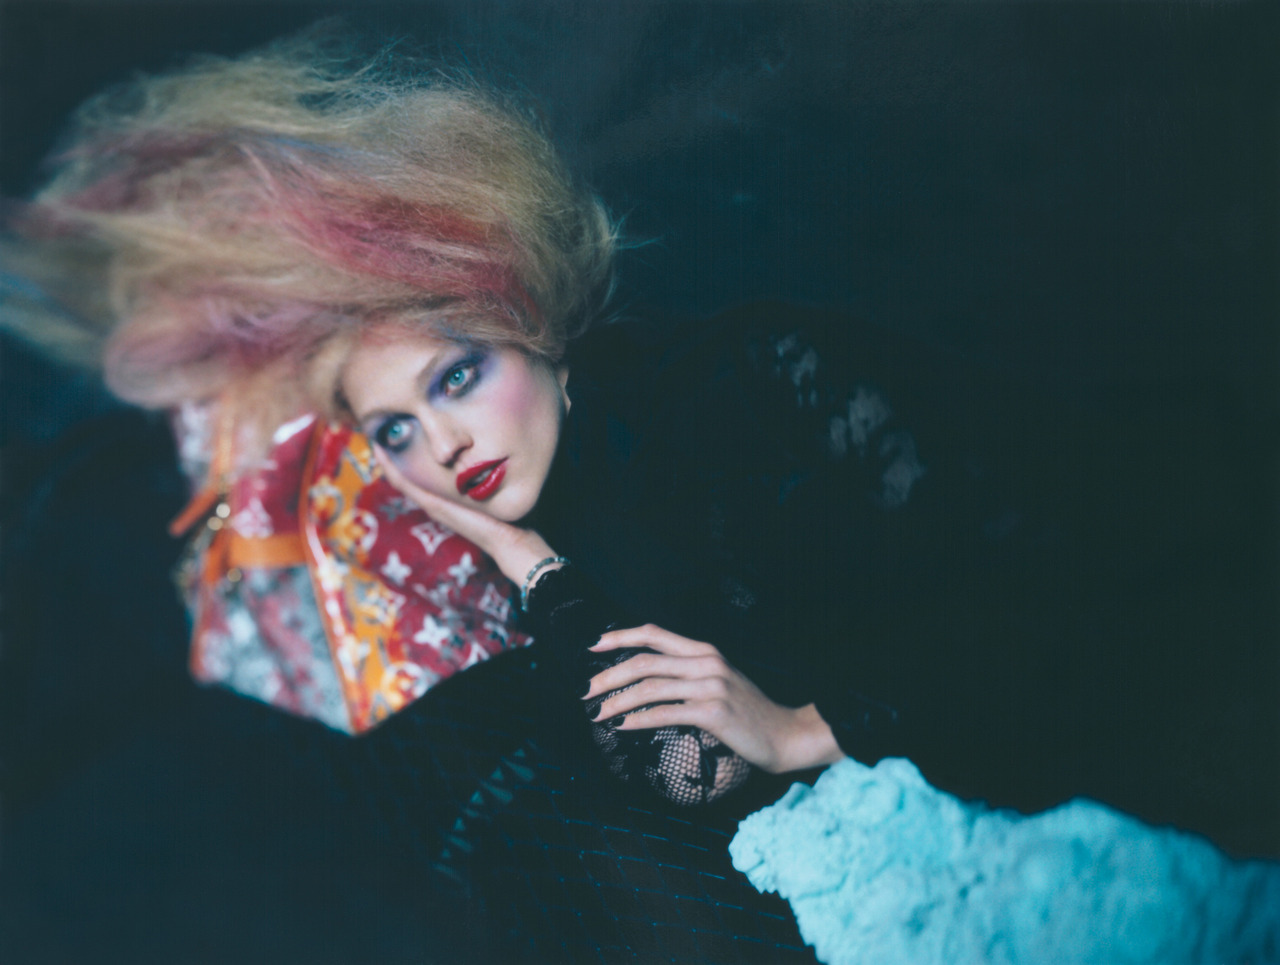 Photo by Paolo Roversi Don't look at us. It's Monday, we need a nap.